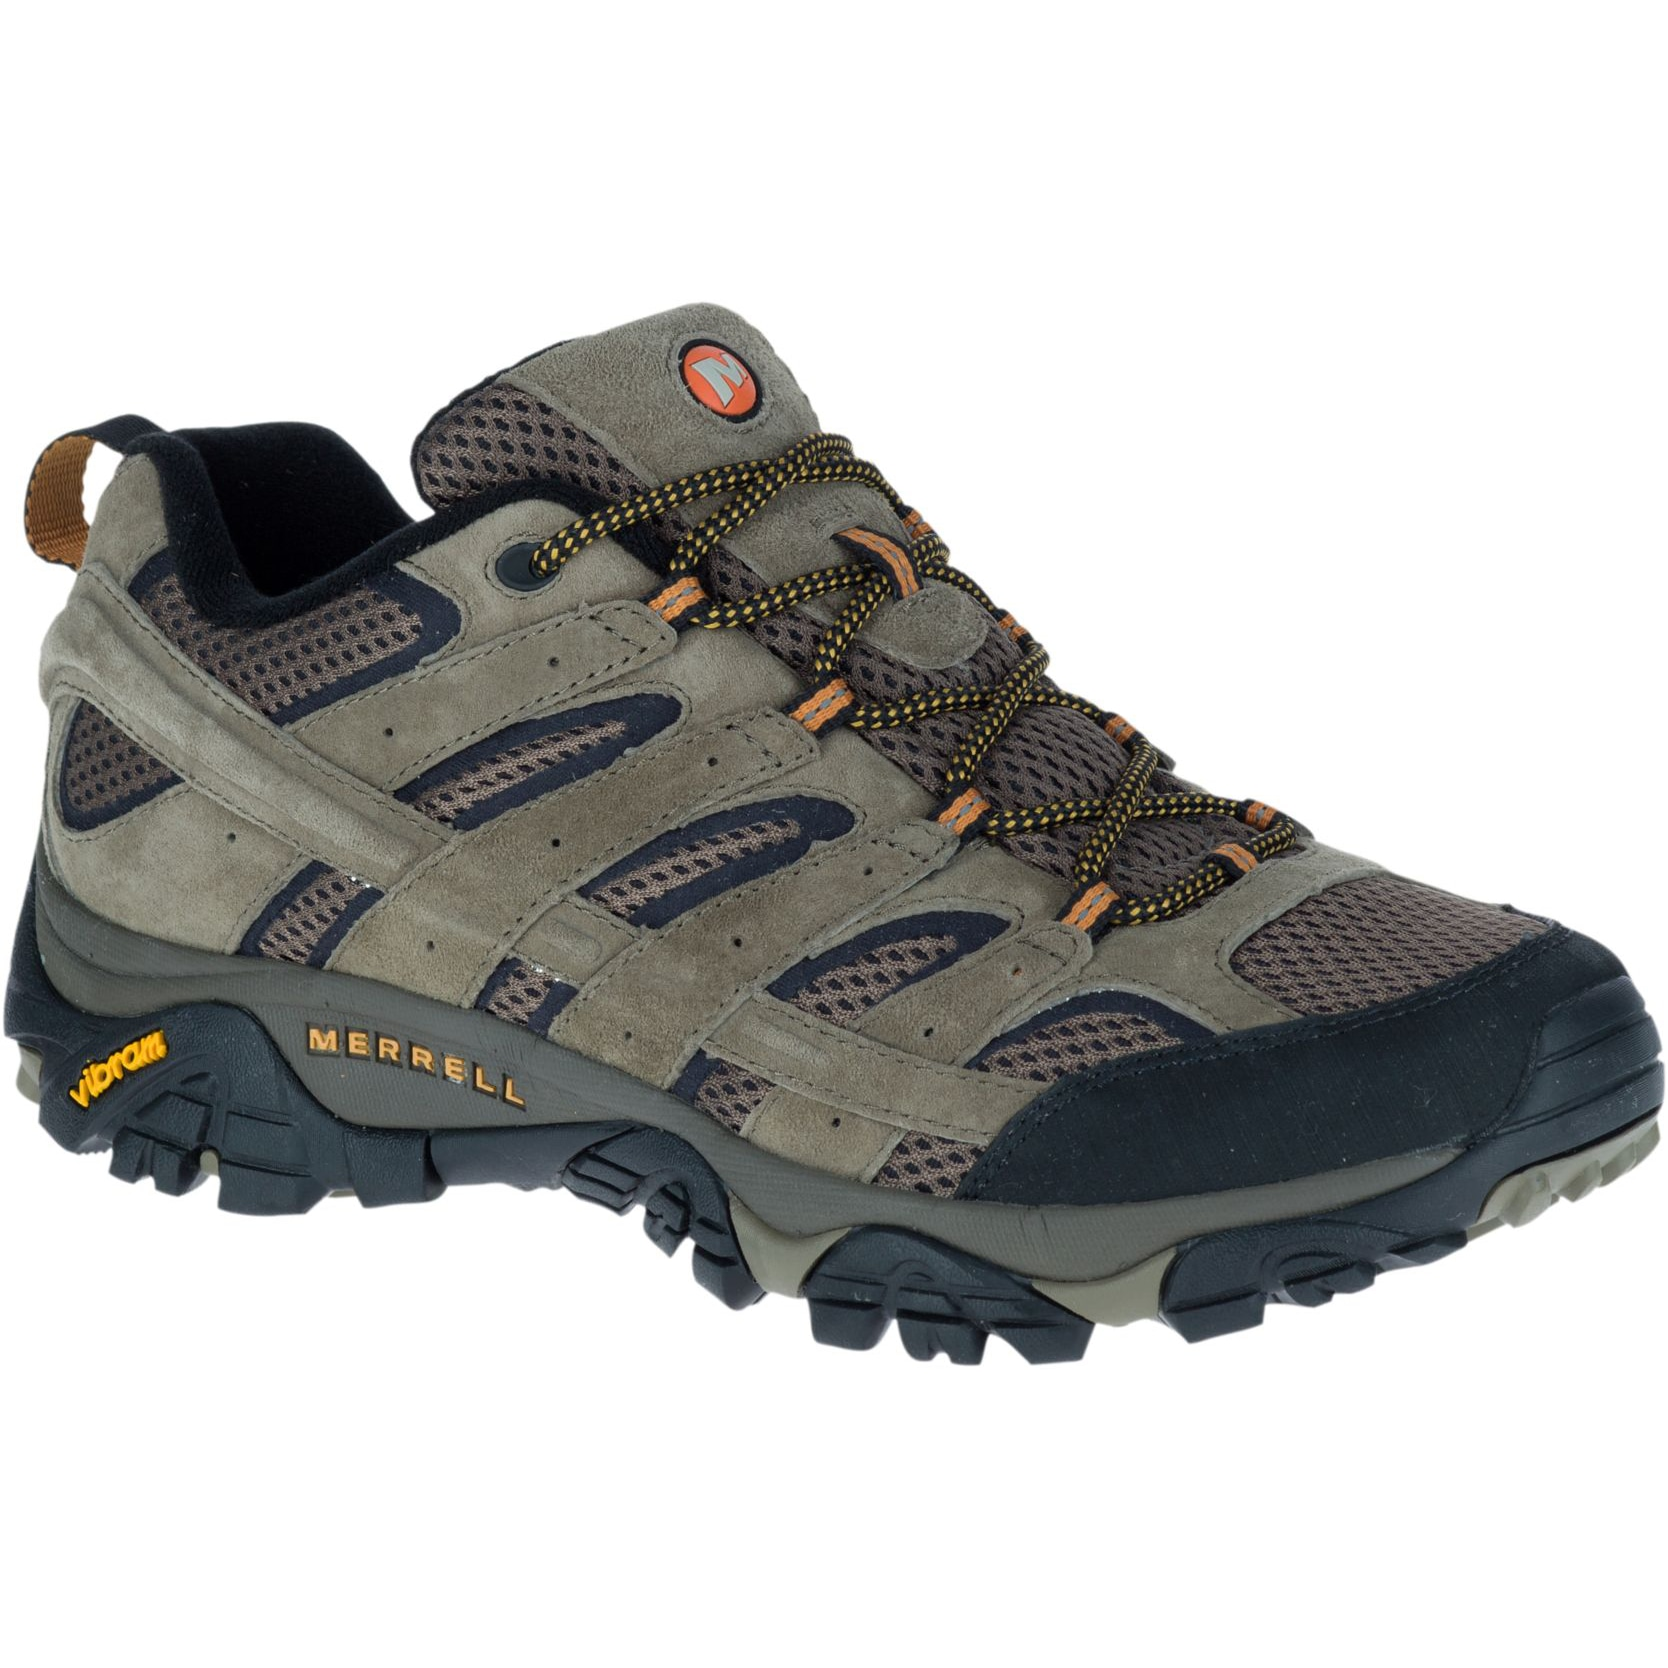 Moab 2 Vent Shoe - Men's